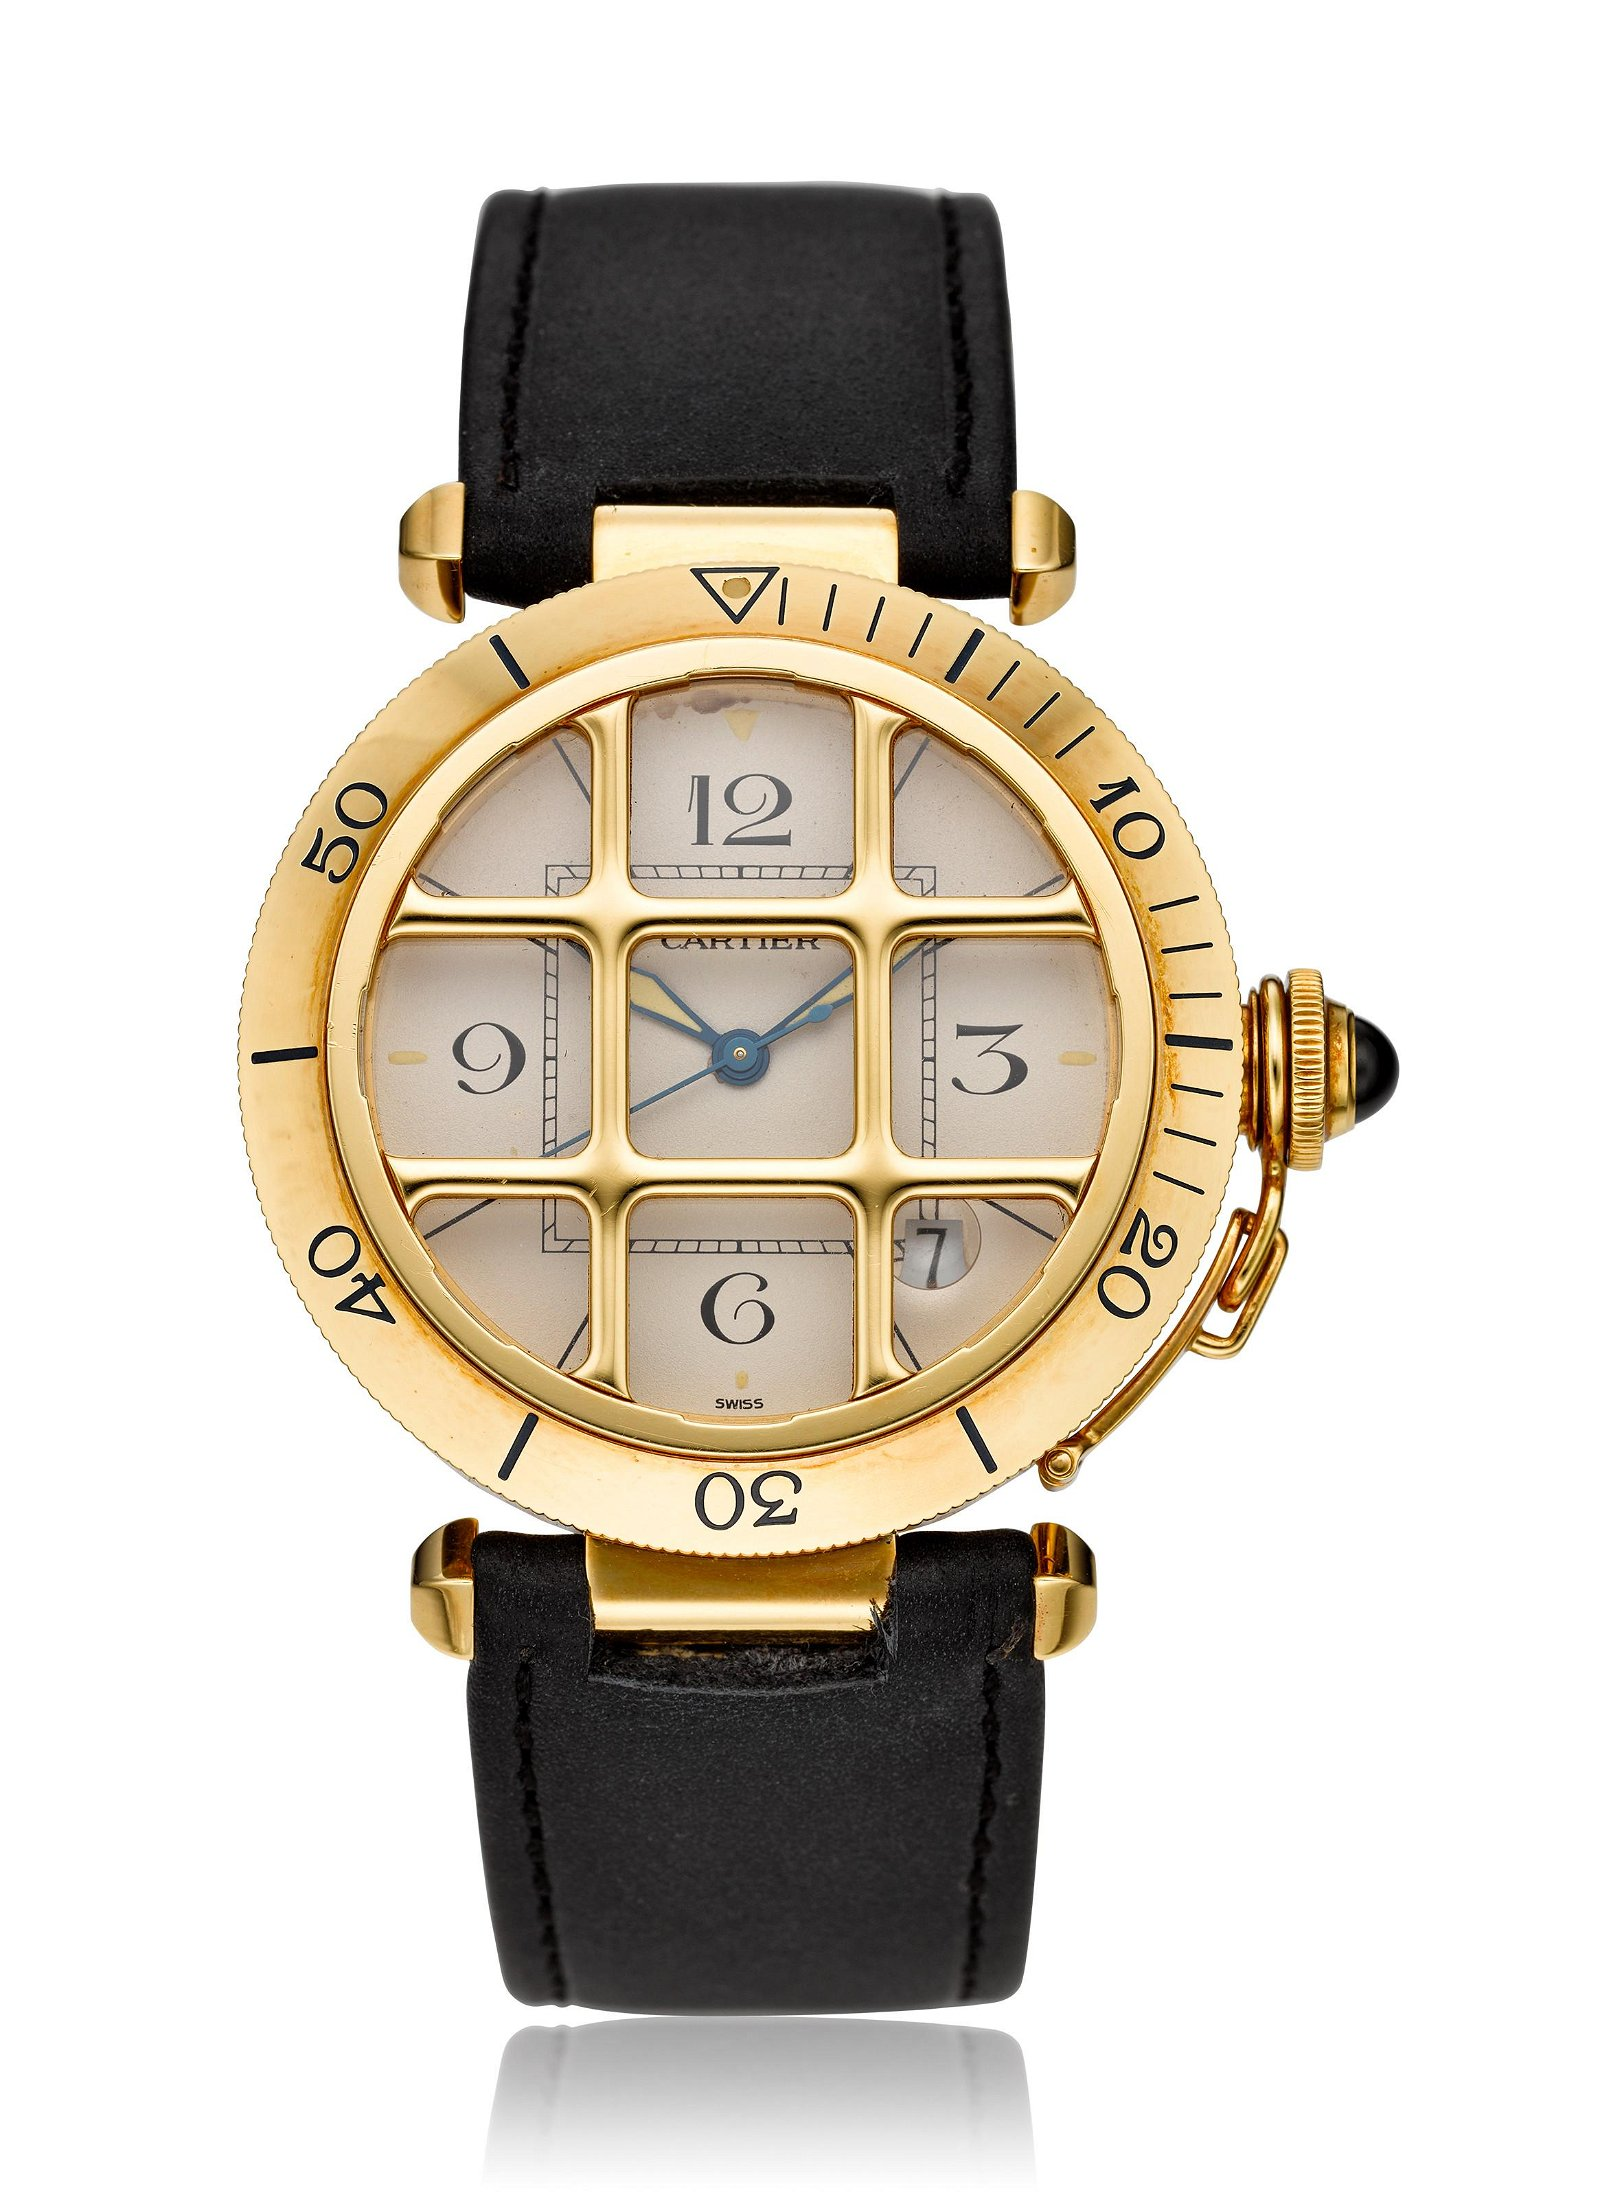 CARTIER, 18K PASHA WITH GRILL, REF. 1021 1